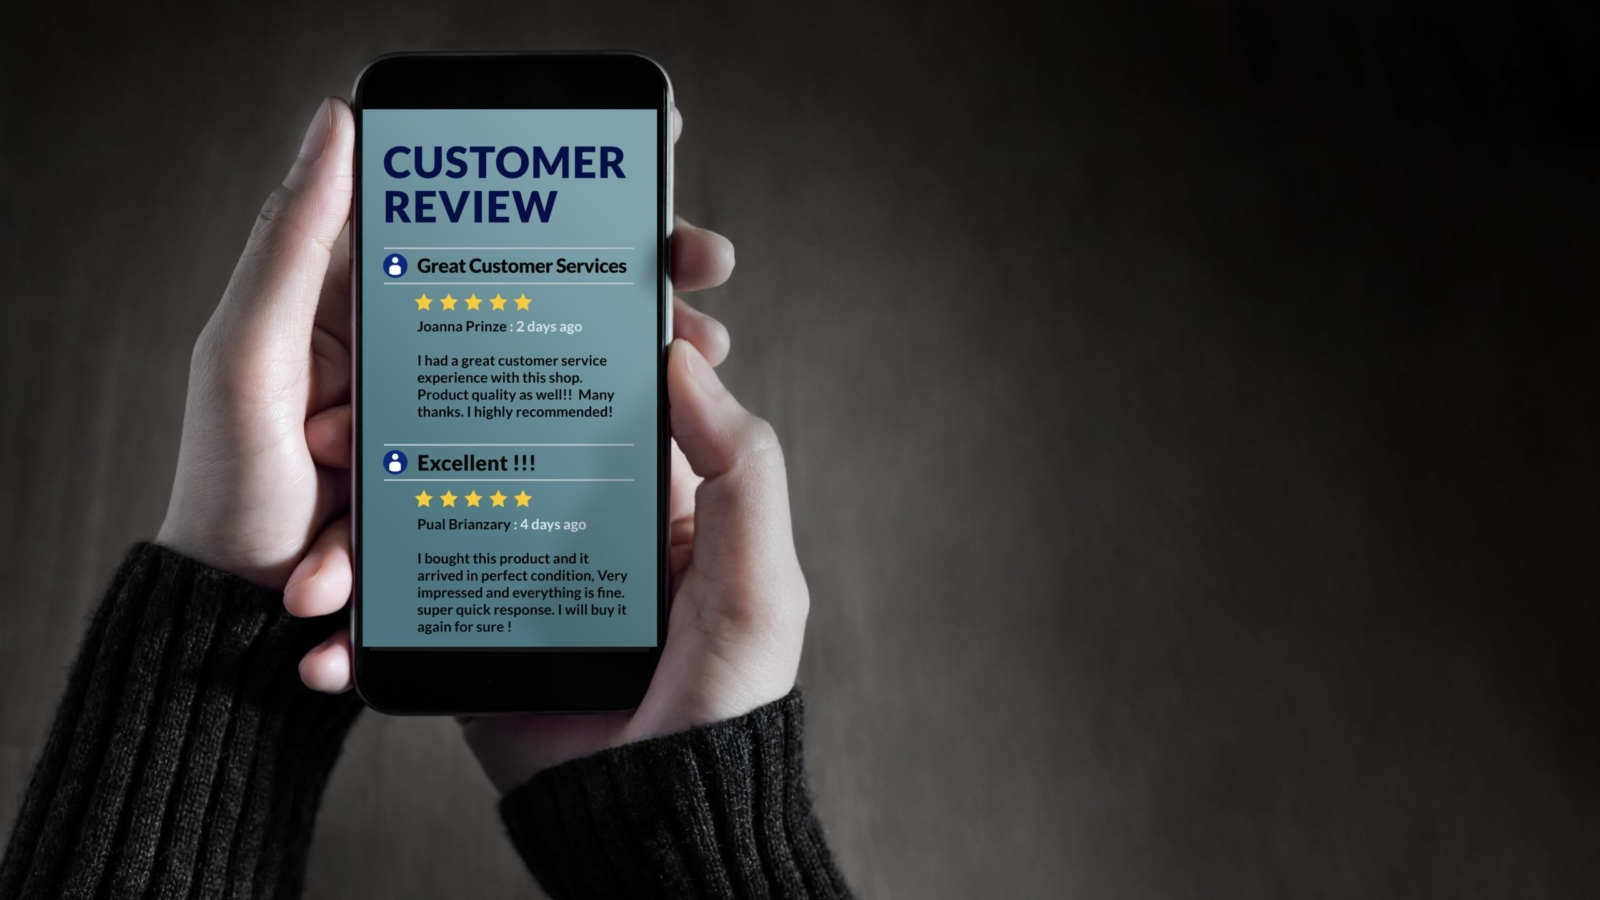 A person holds a phone with customer reviews on it